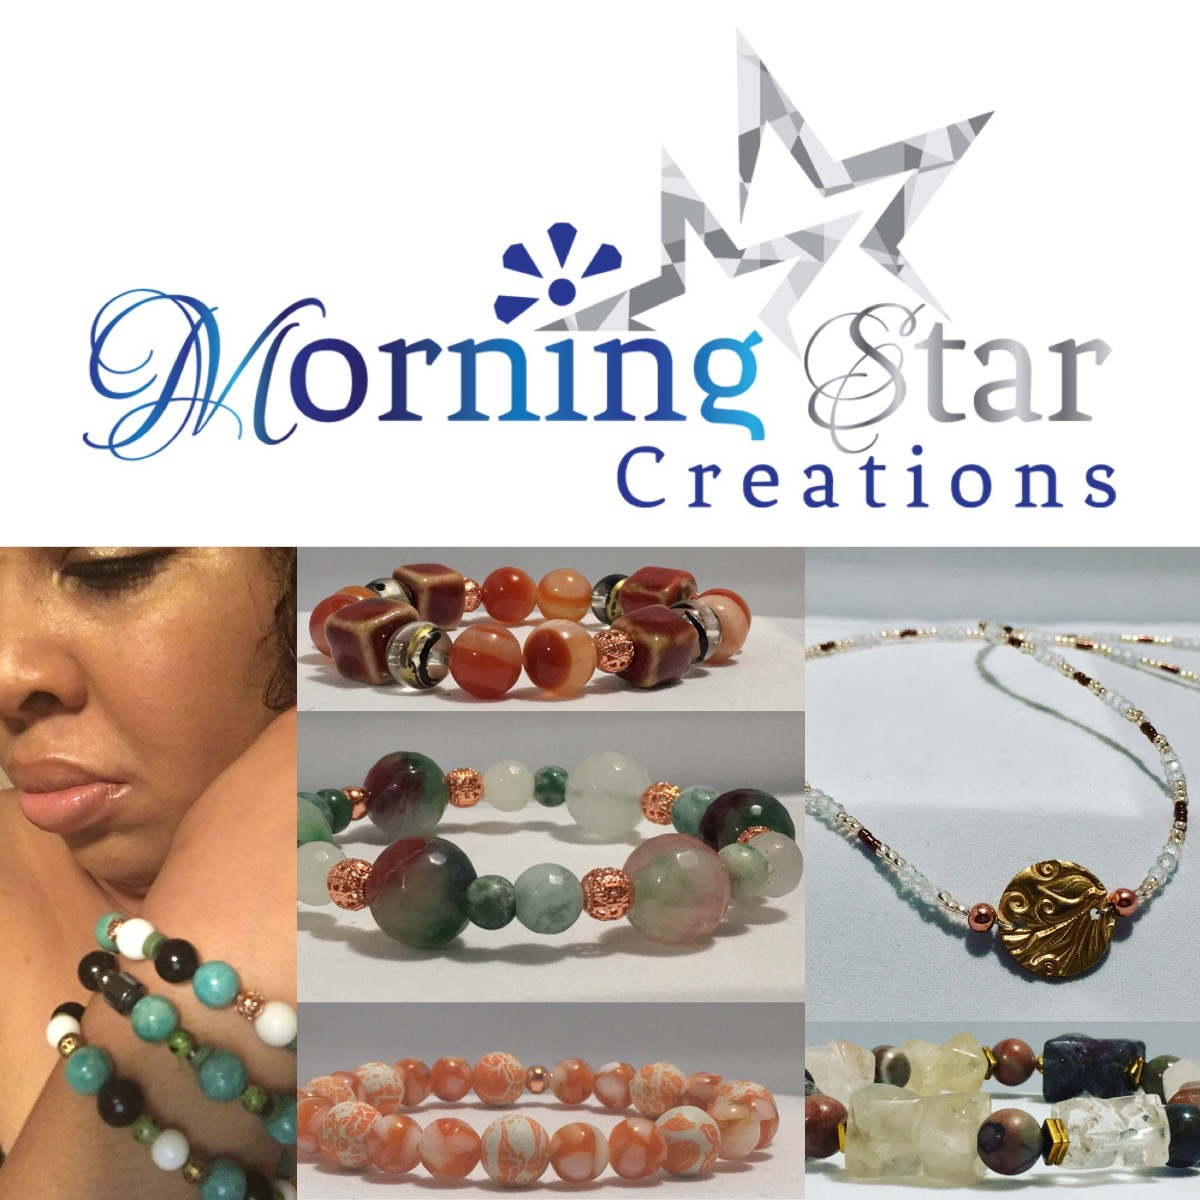 Morning Star Creations  Profile Picture